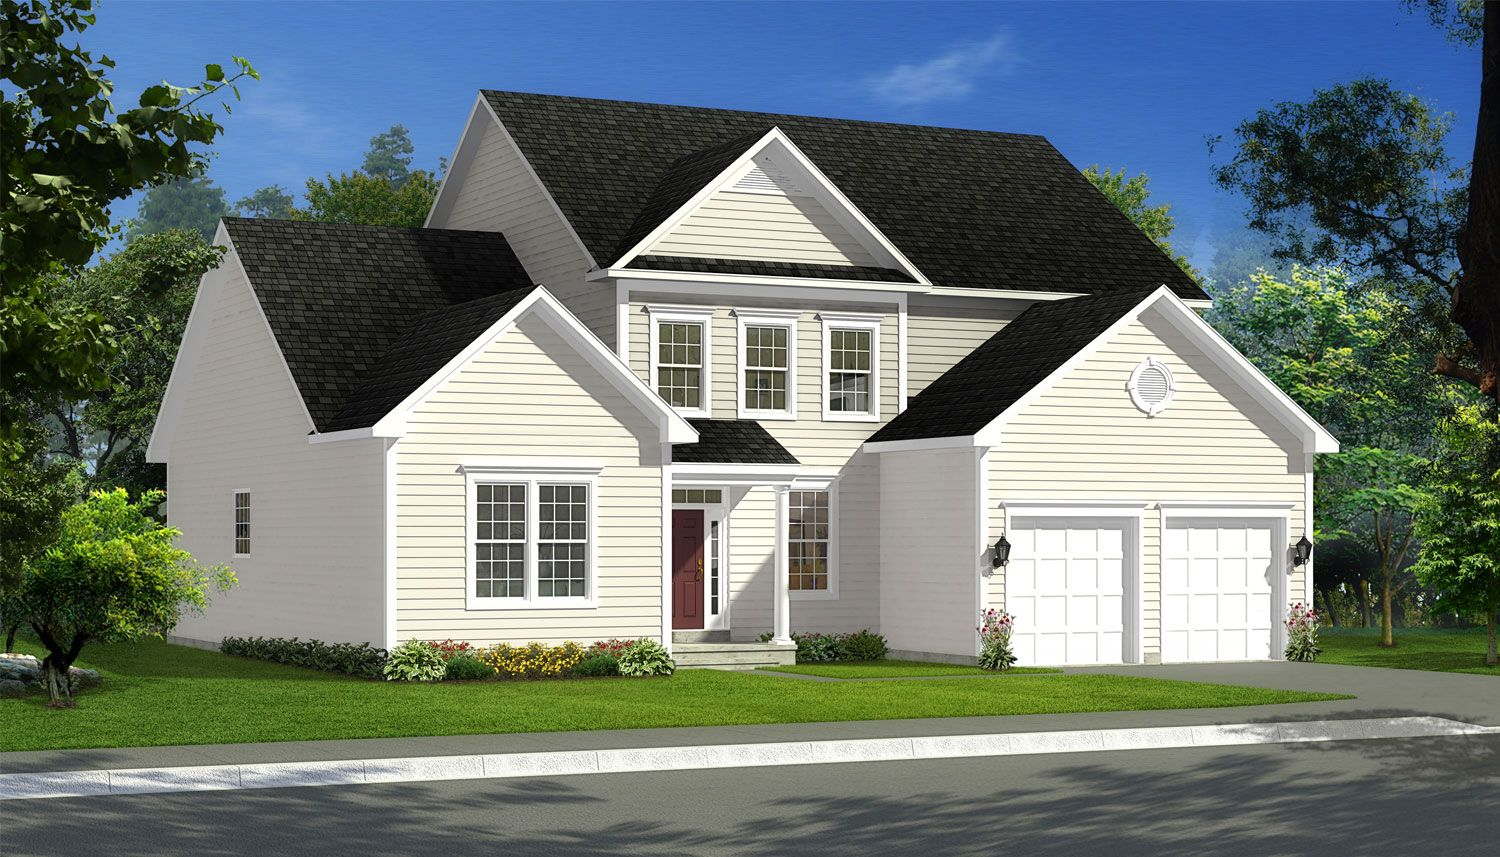 New Construction Homes In Jessup Md